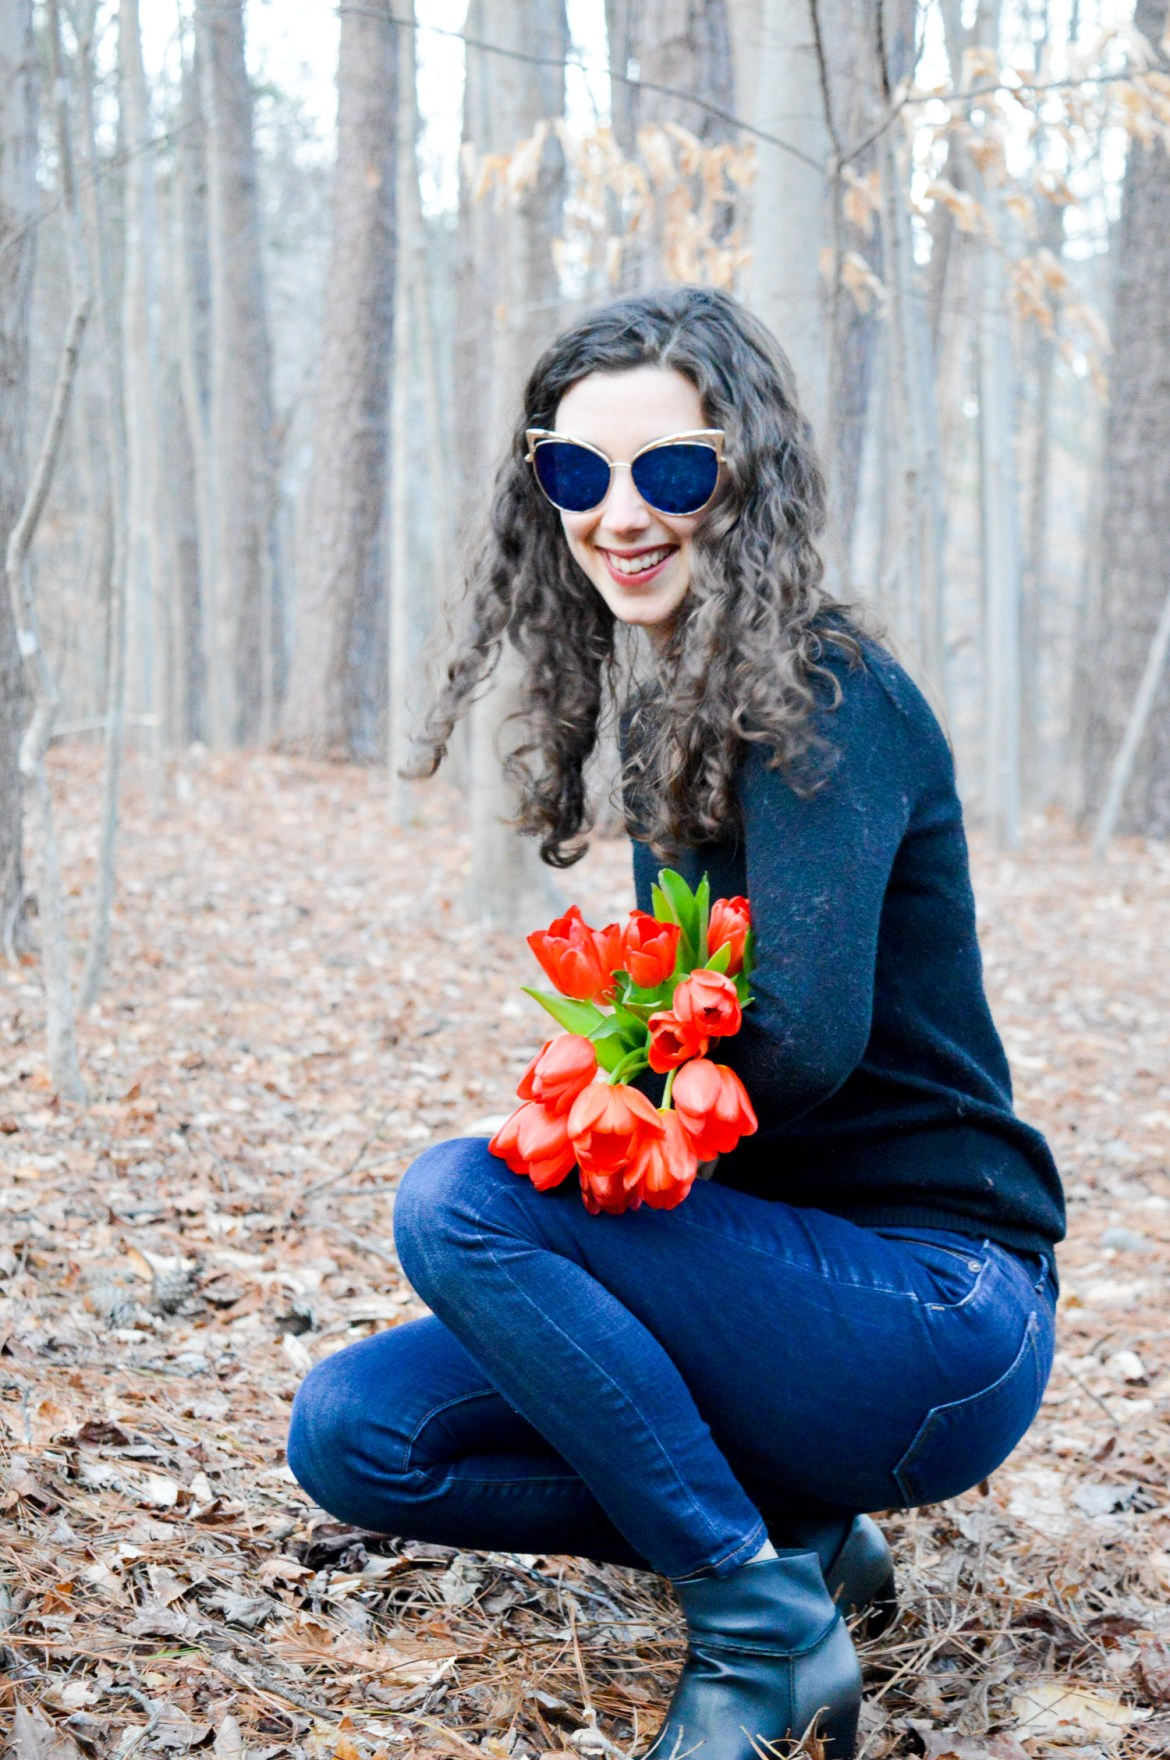 7 low-key Valentine's Day ideas - with or without a significant other